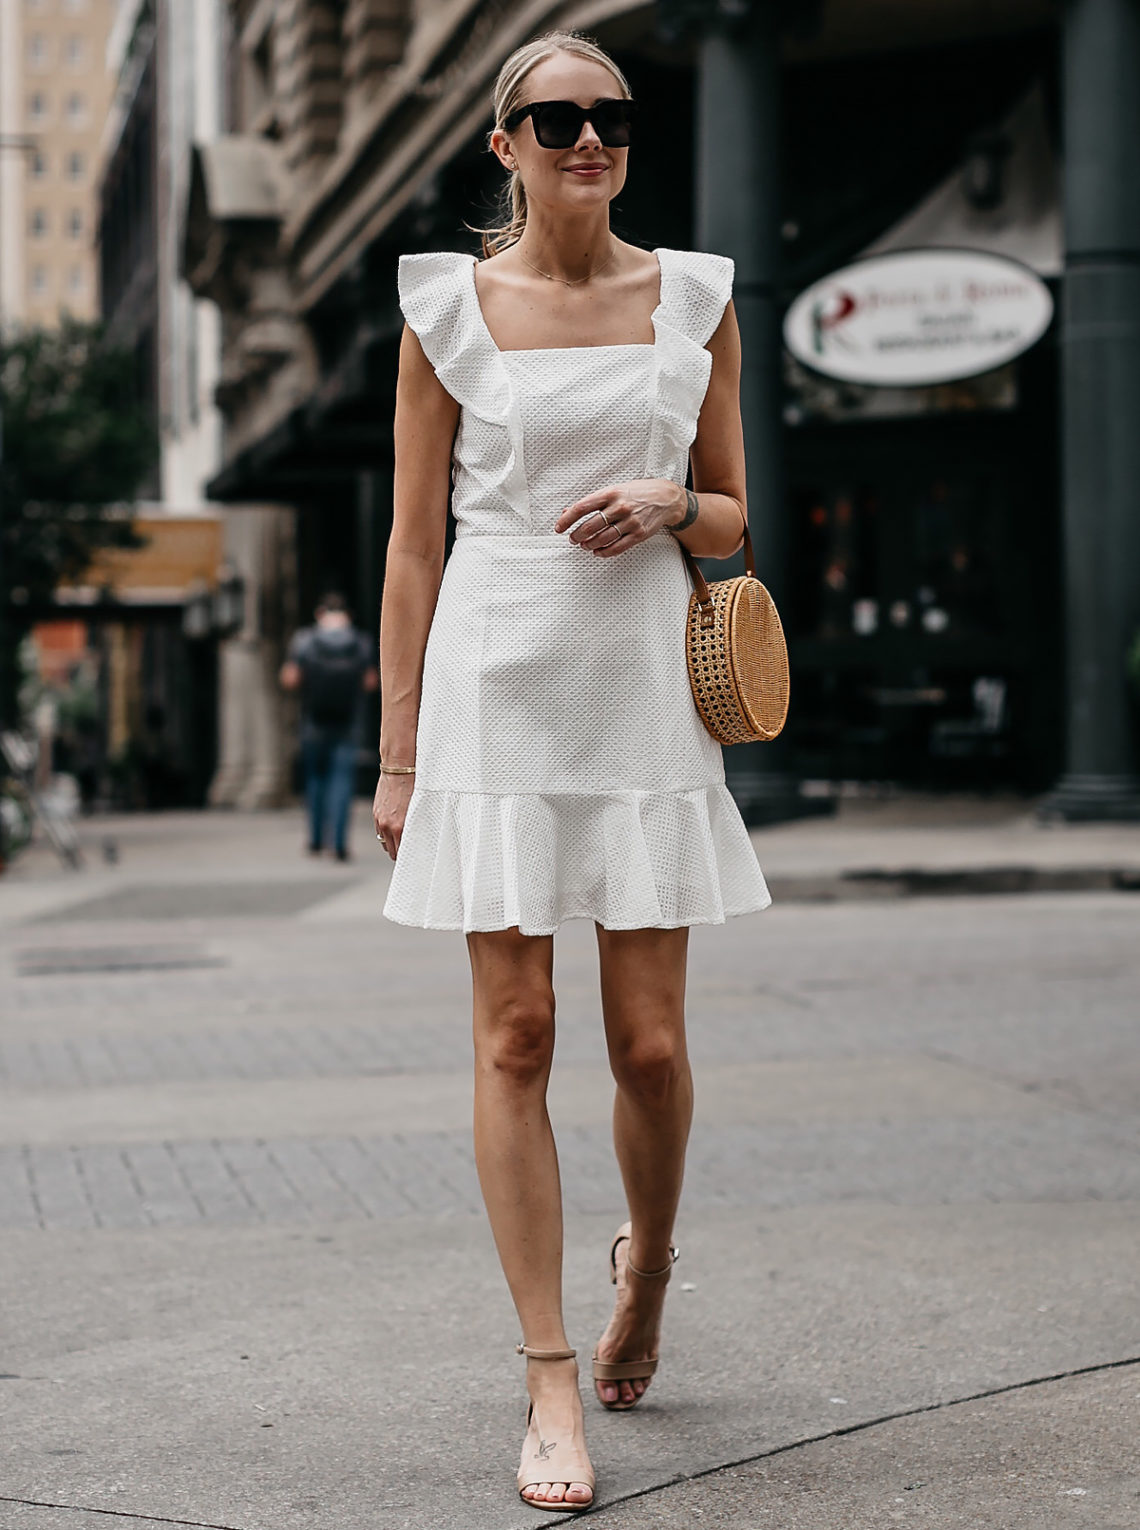 Fashion Jackson Bloomingdales White Eyelet Ruffle Dress Circle Straw Handbag Tan Ankle Strap Sandals Fashion Jackson Dallas Blogger Fashion blogger Street Style